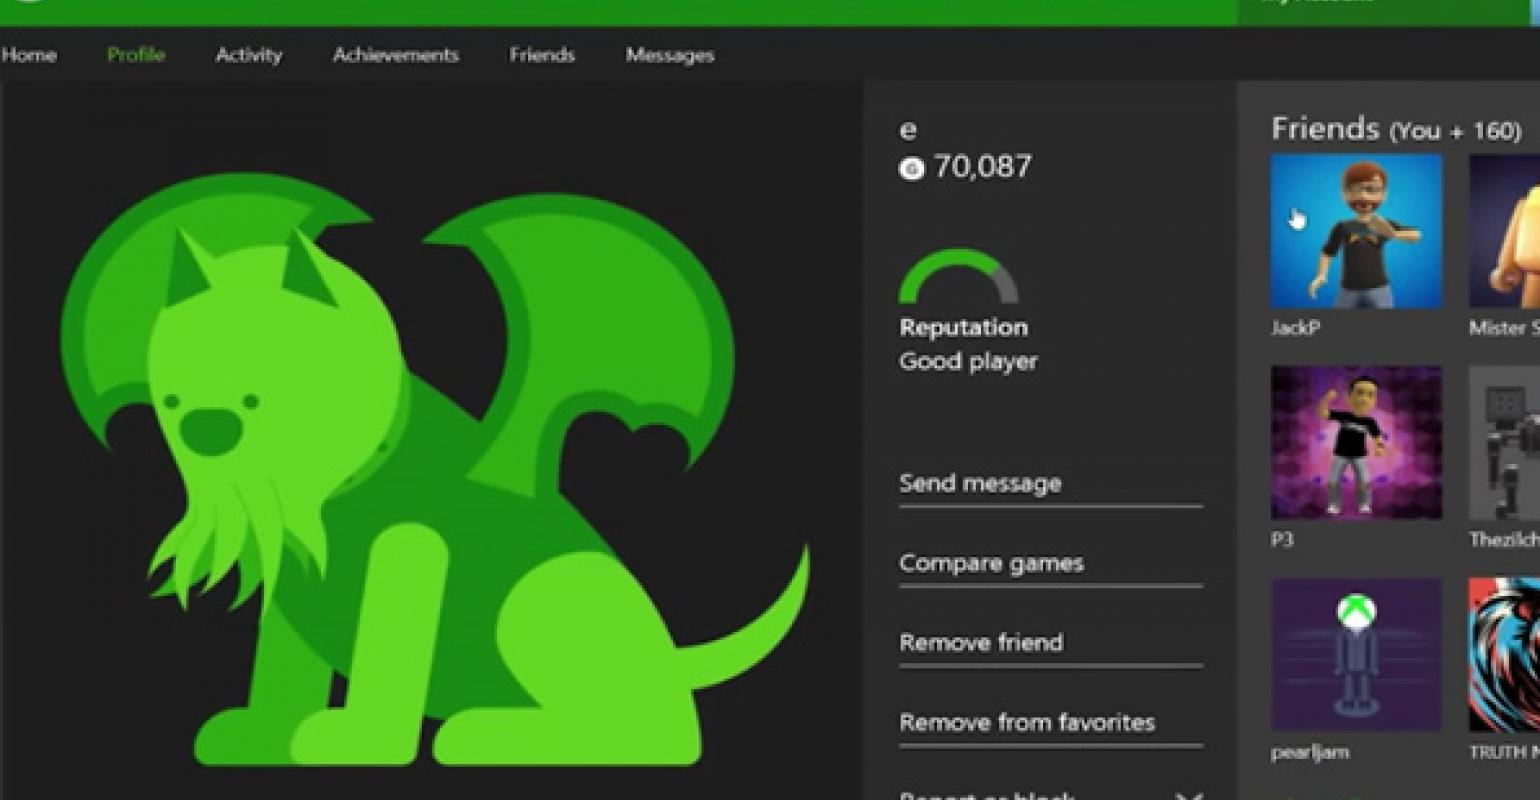 Xbox One Game Clips And Achievements Coming To The Web It Pro